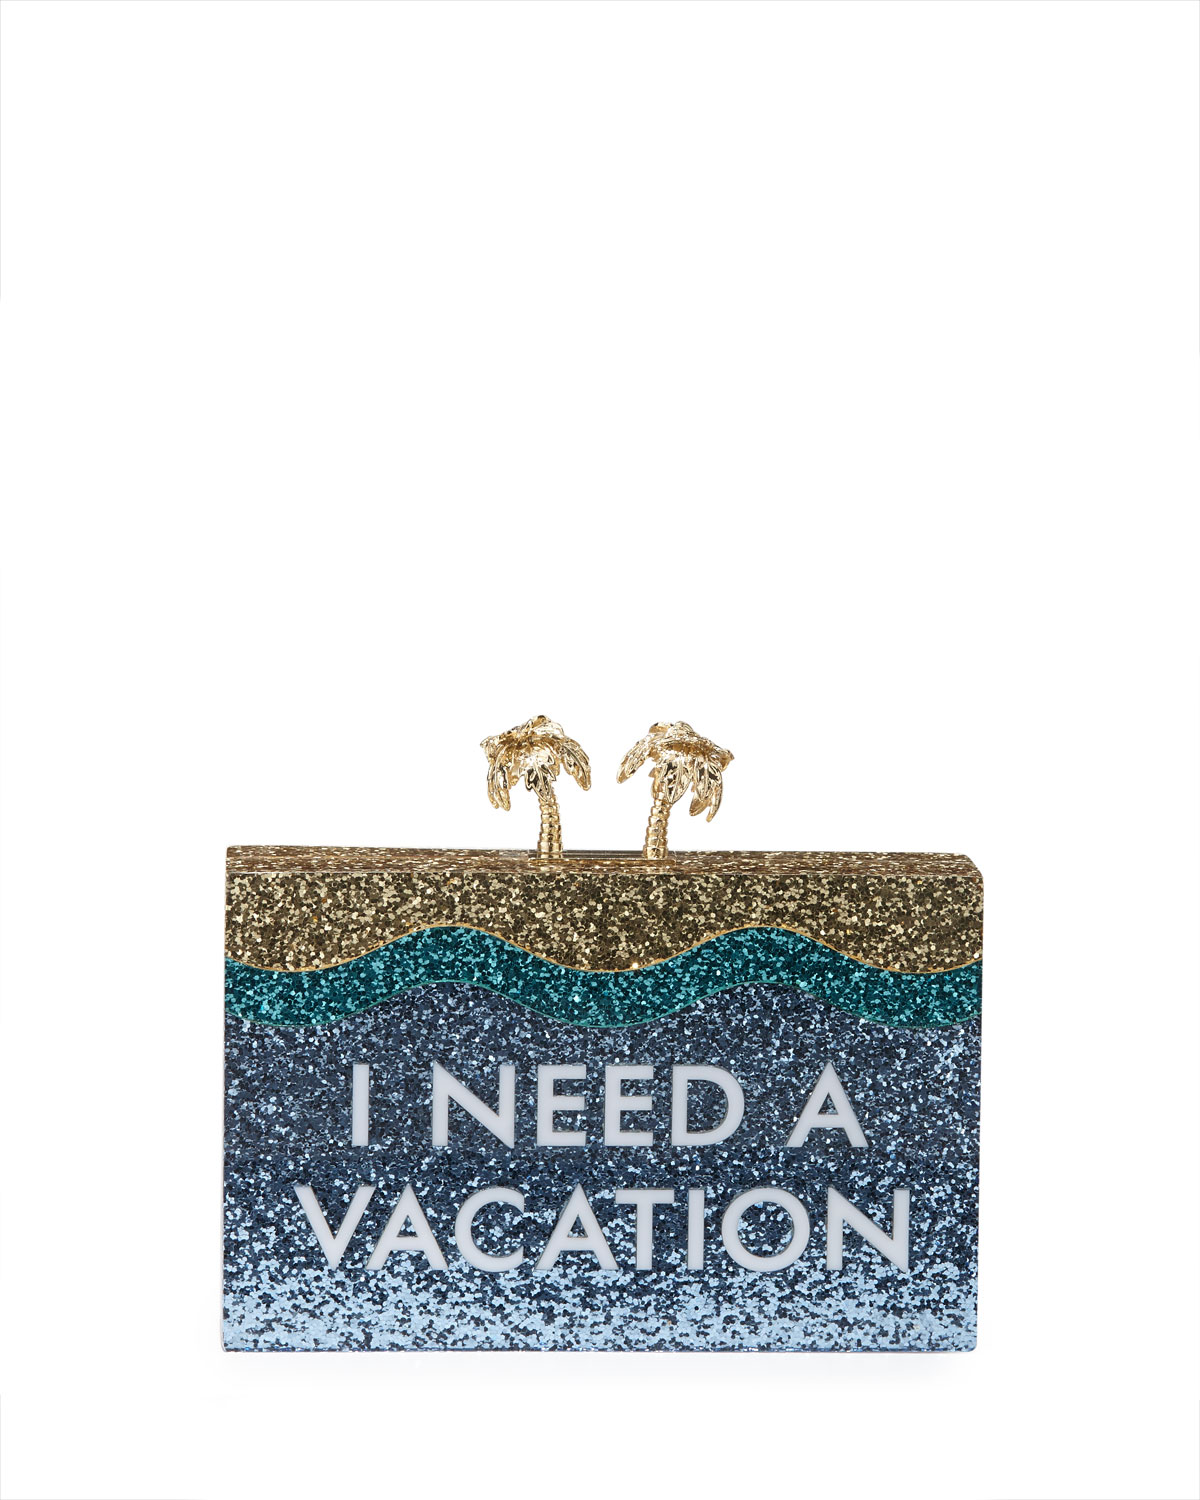 a1861058ad0b kate spade new york i need a vacation clutch bag